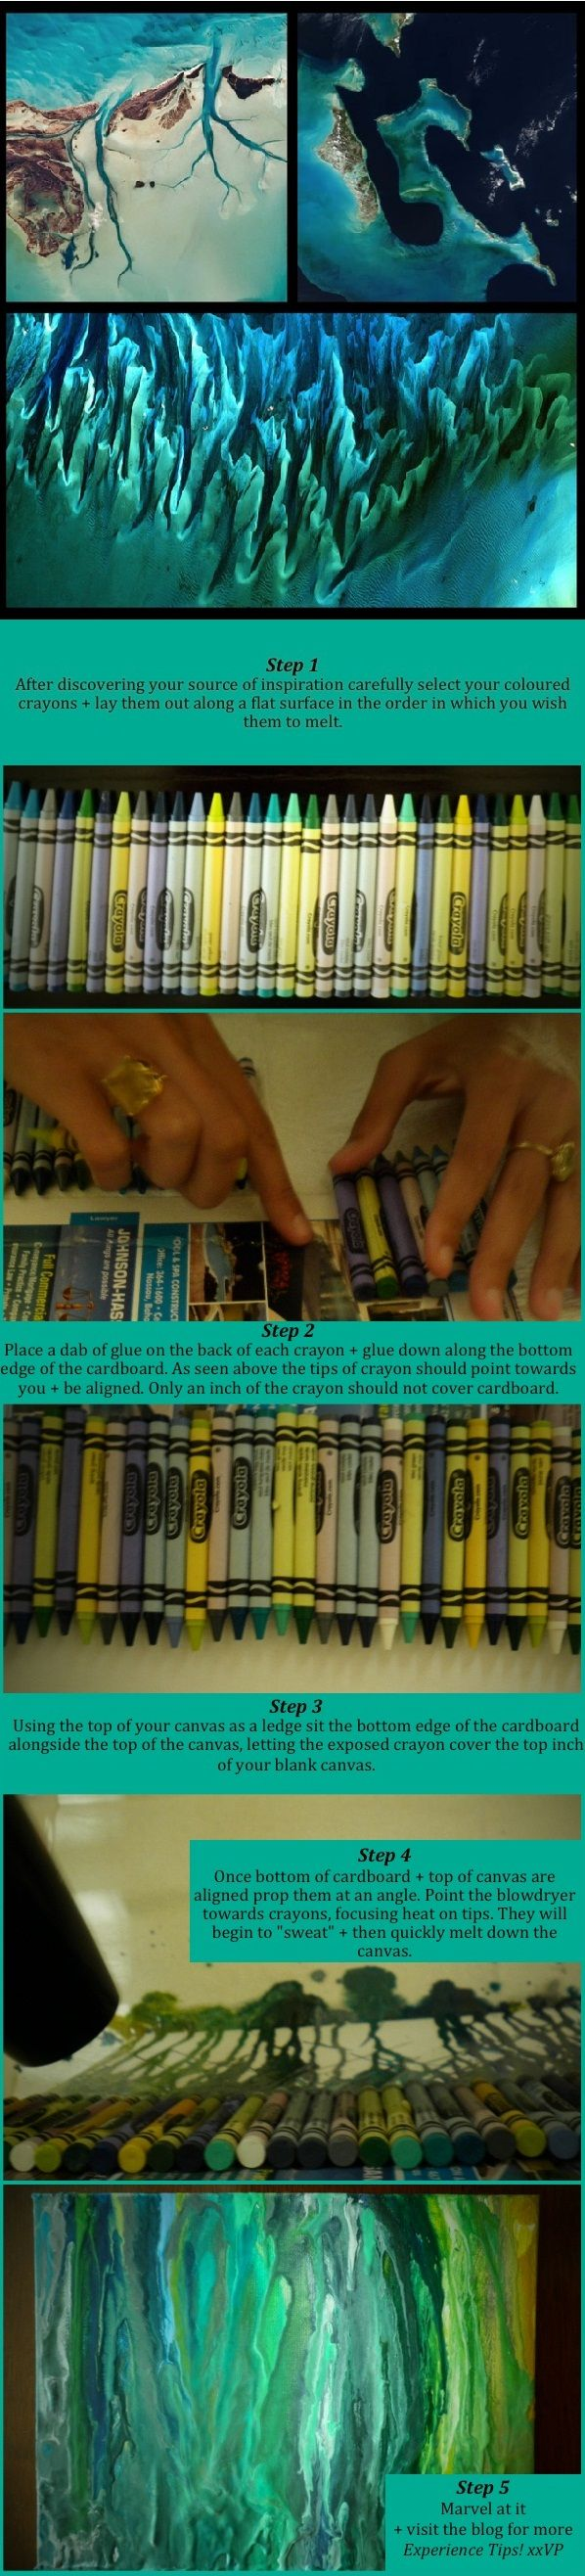 Craft for kids - How to make melted crayon art, without gluing the crayon to the canvas